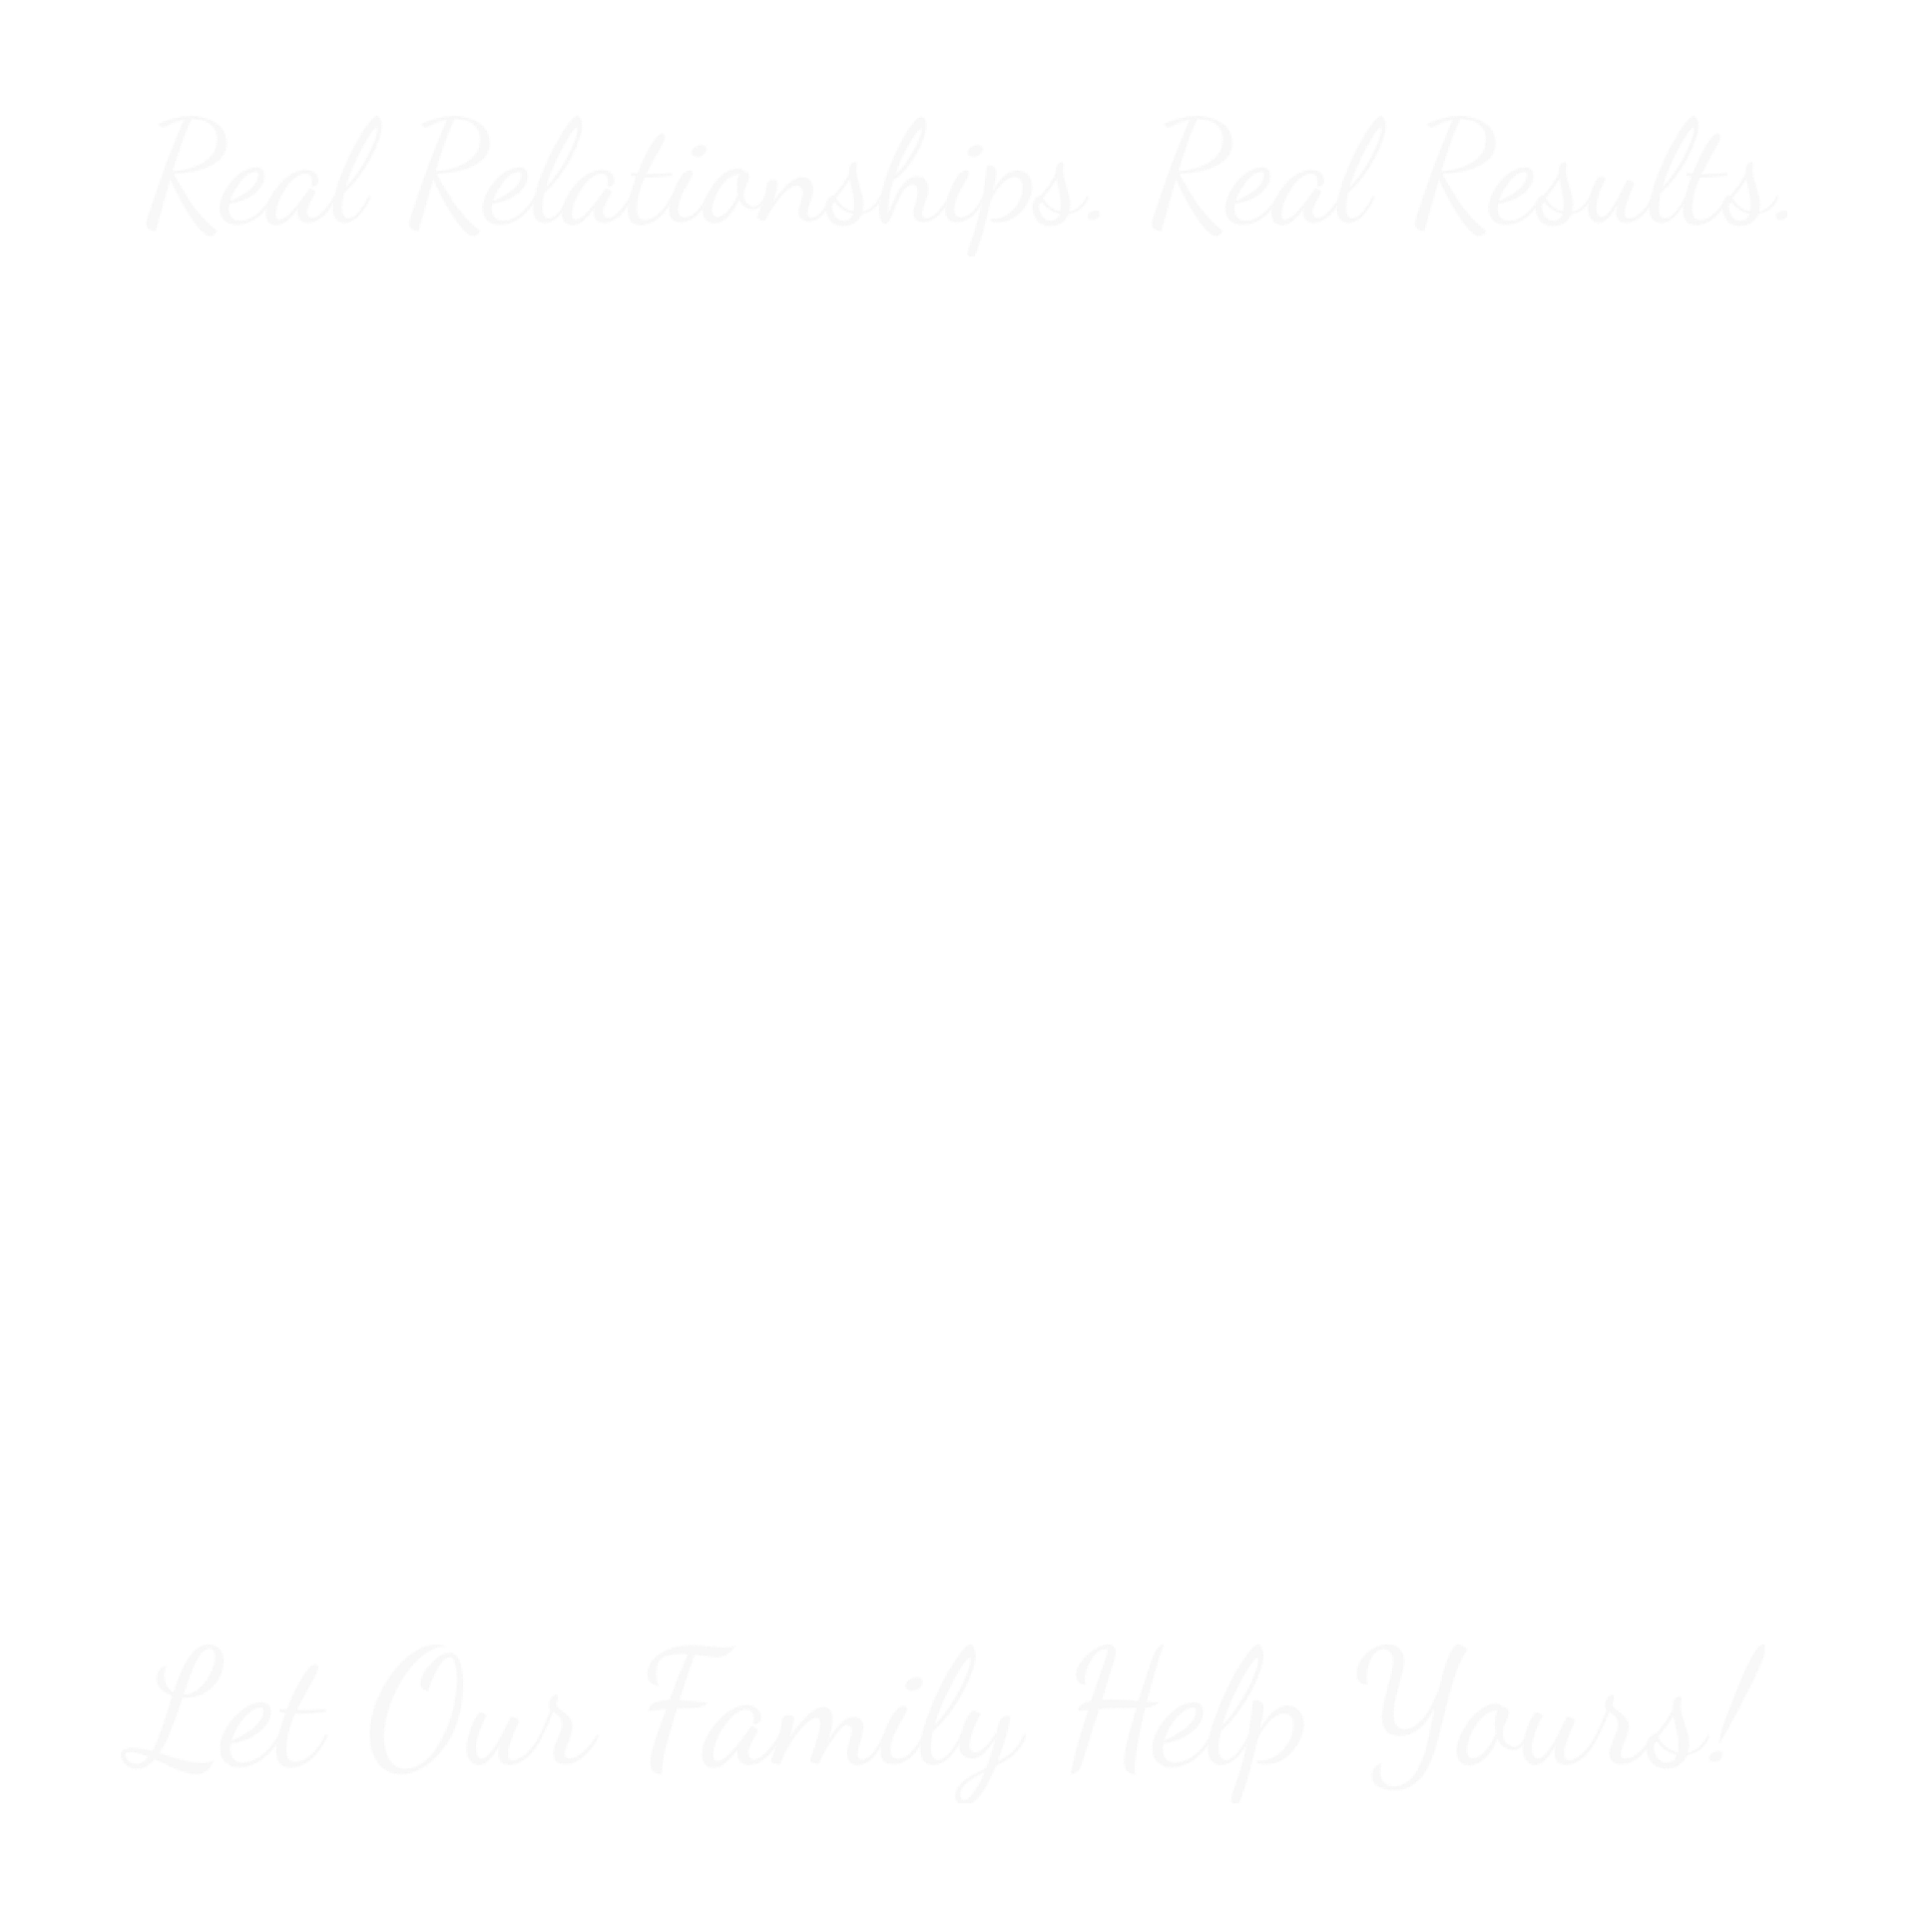 The Christina Jones Team - Keller Williams Preferred